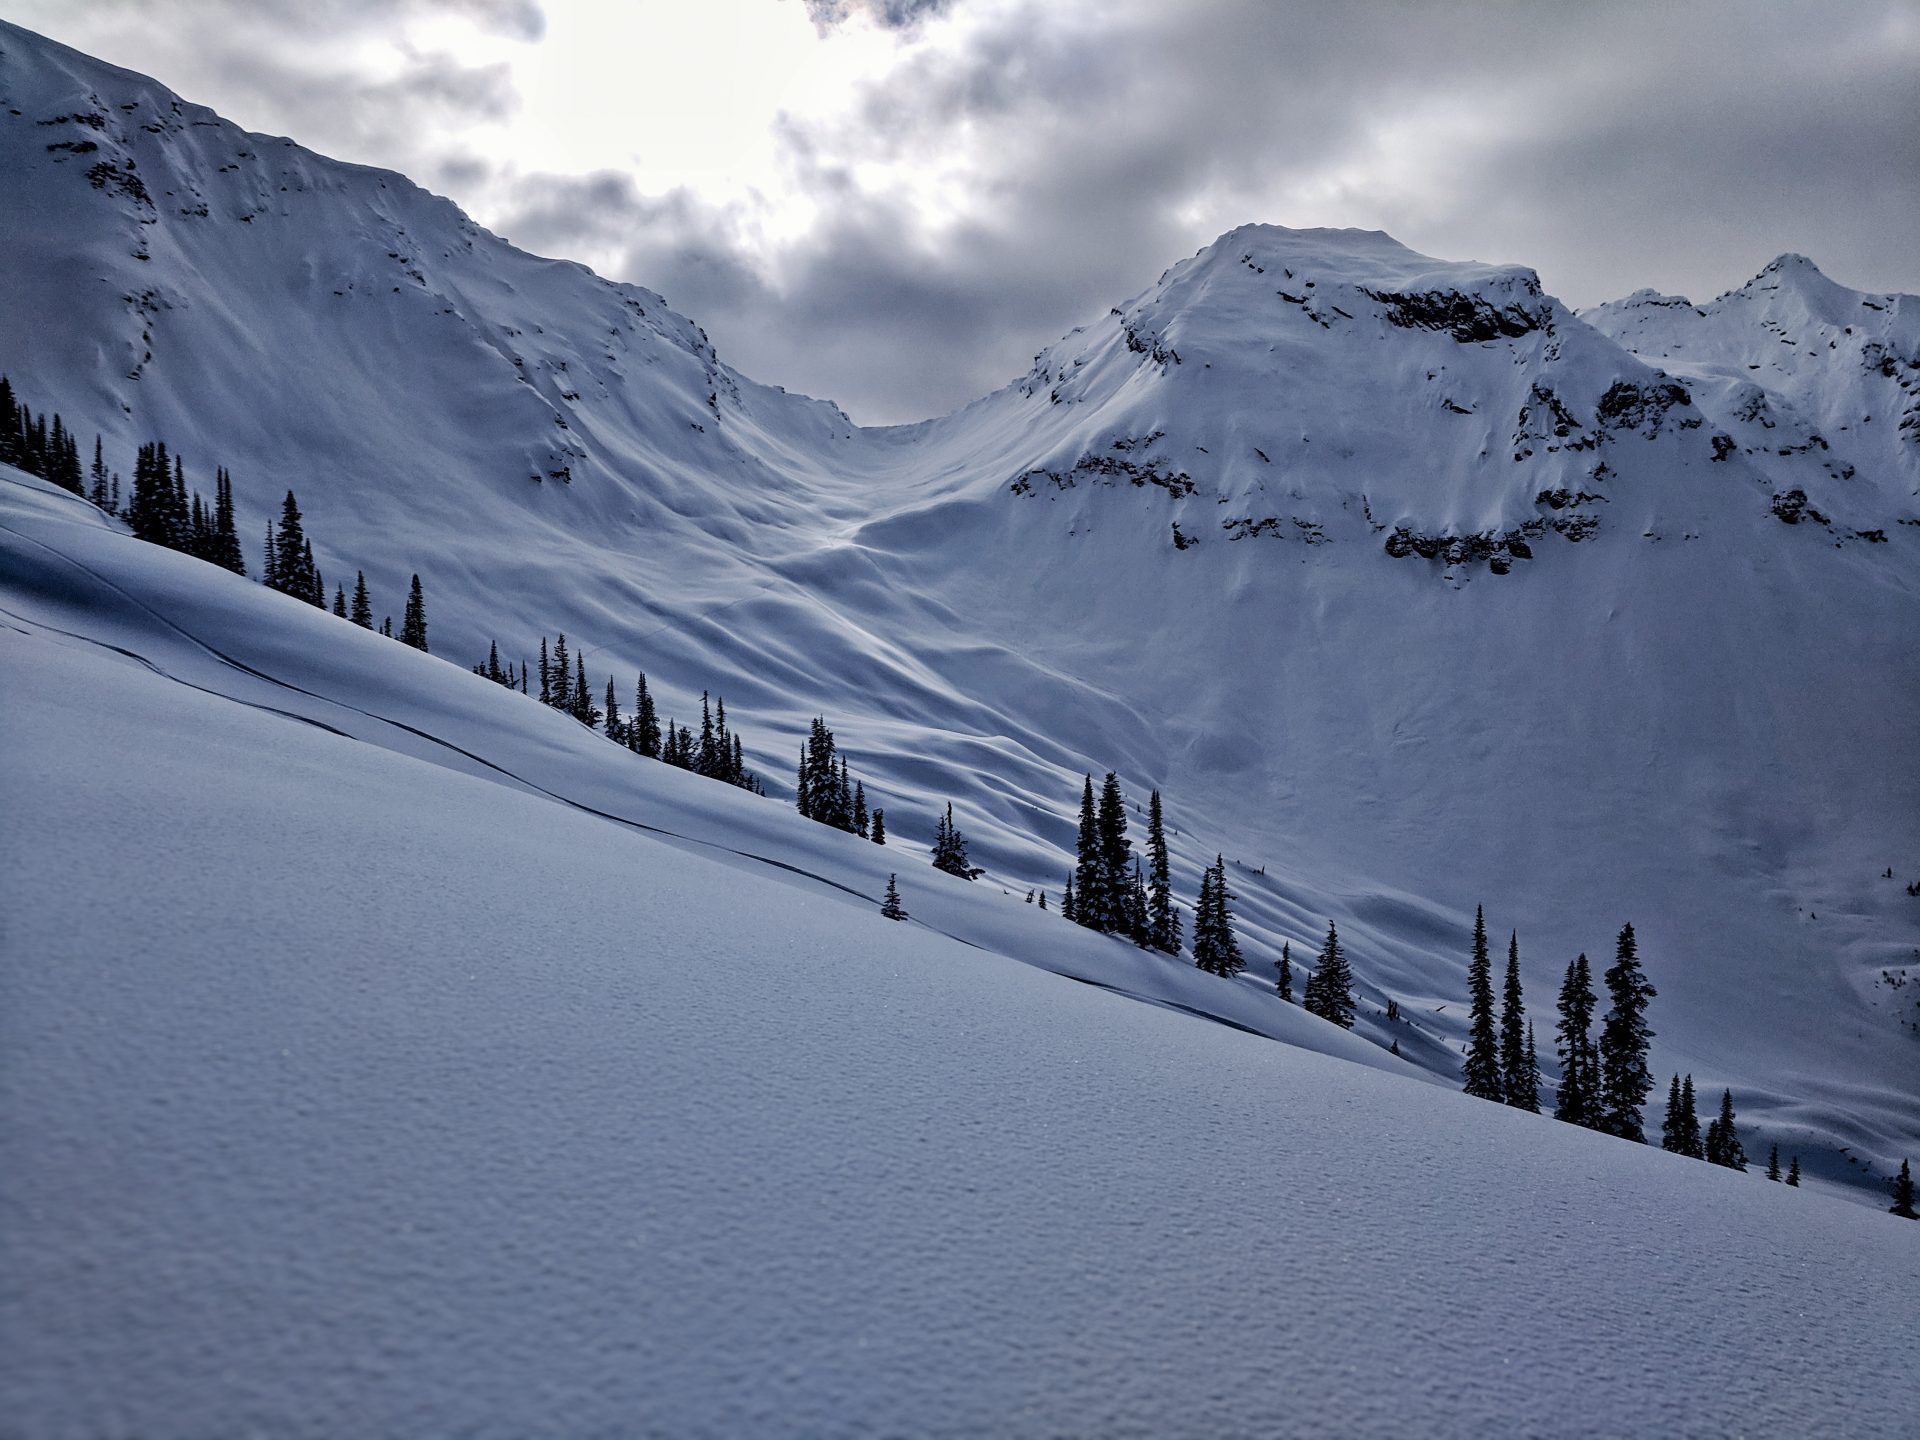 Rogers Pass Backcountry Skiing Splitboarding